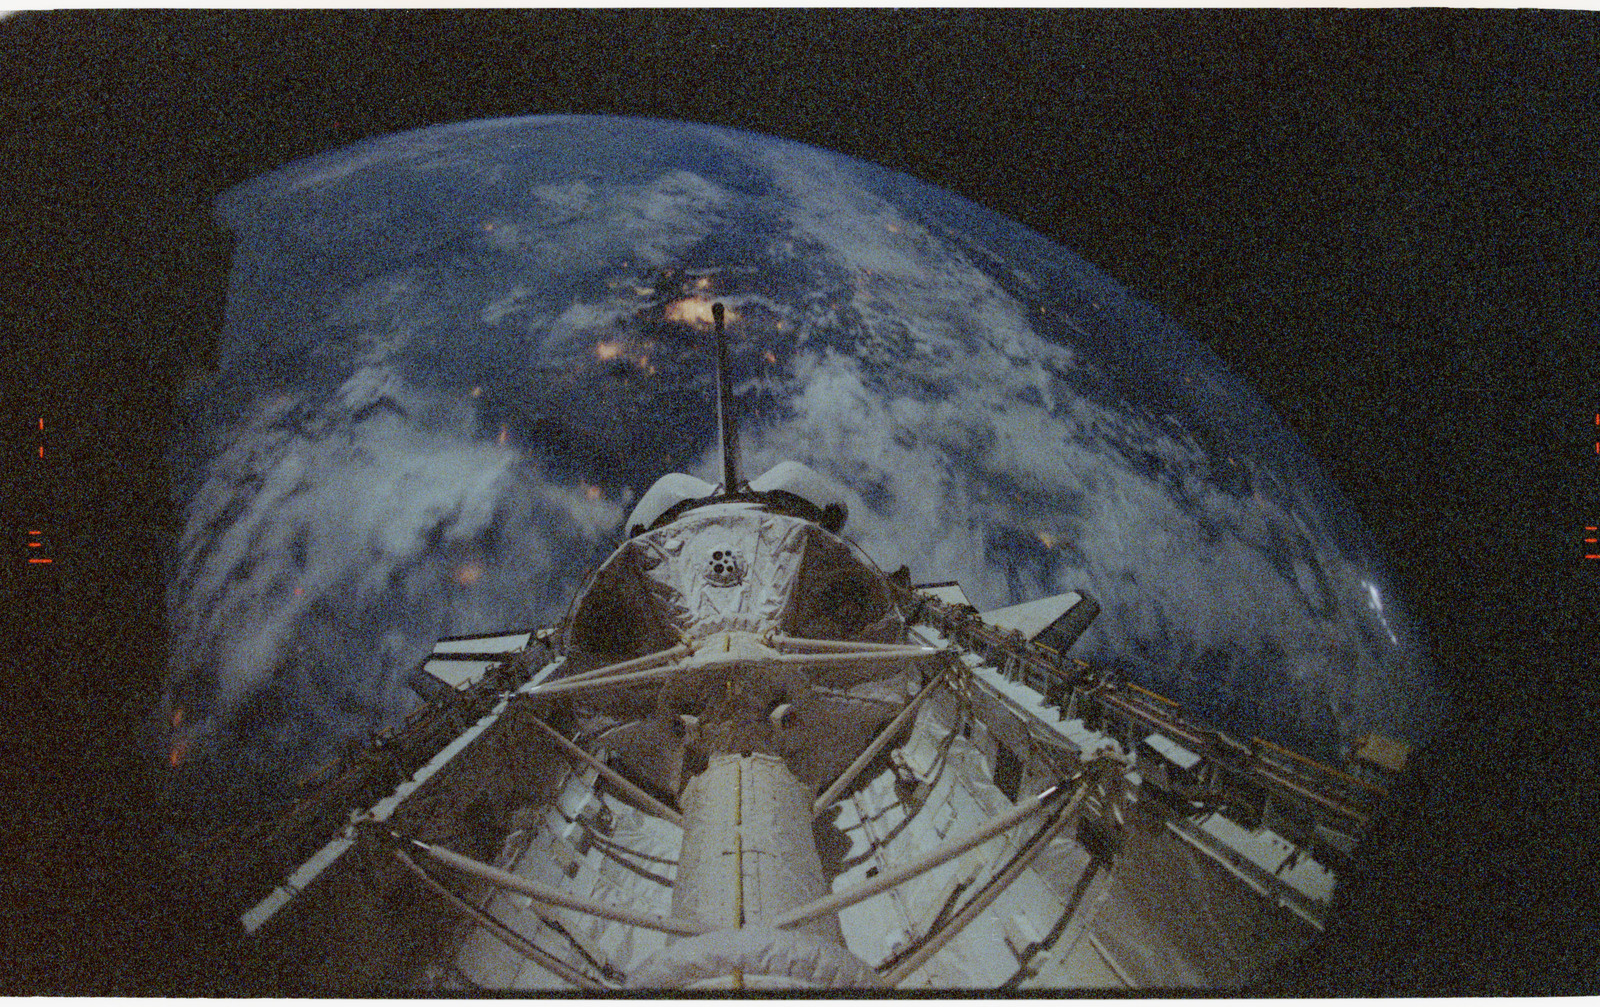 STS055-26-021 - STS-055 - Earth Limb, D-2 Spacelab and Payload Bay.